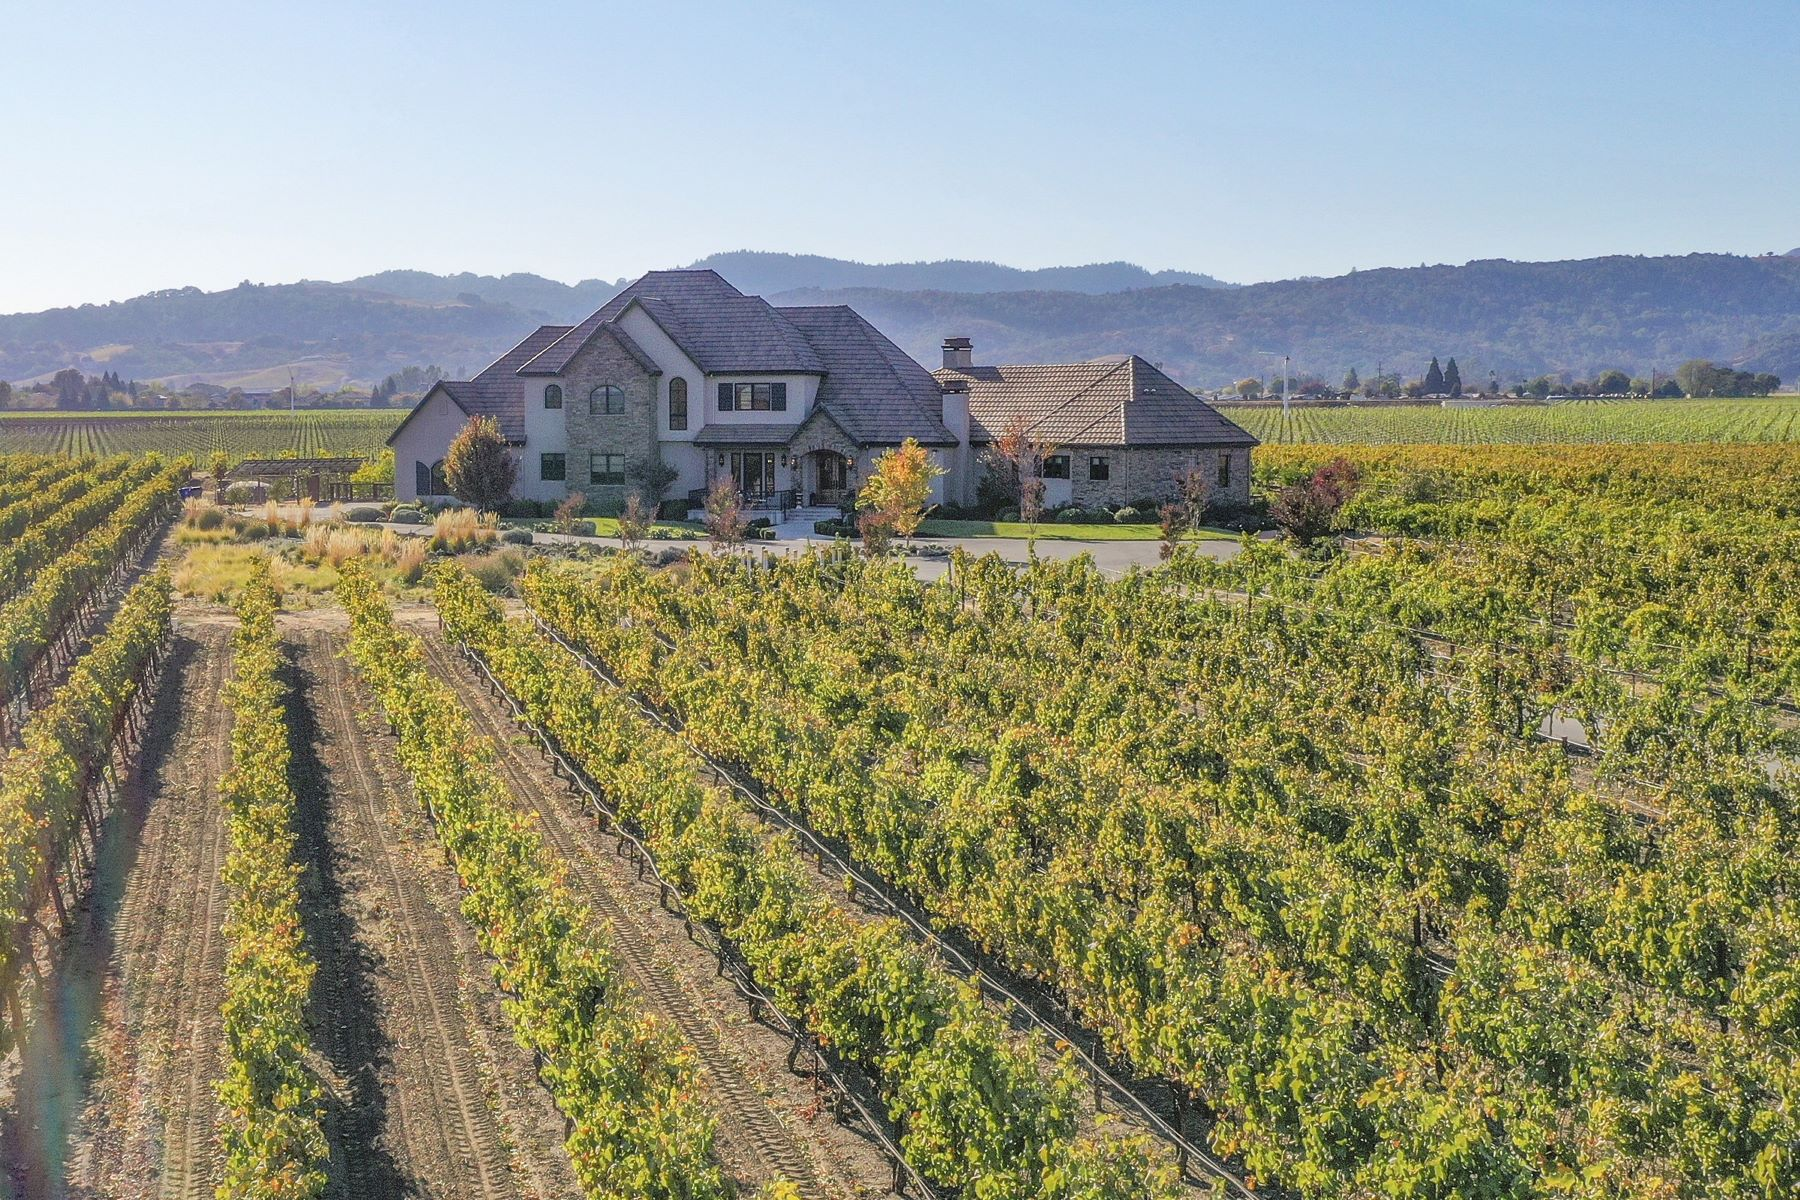 Single Family Homes for Sale at Napa Valley Vineyard Estate 45 Hunter Ranch Road Napa, California 94558 United States